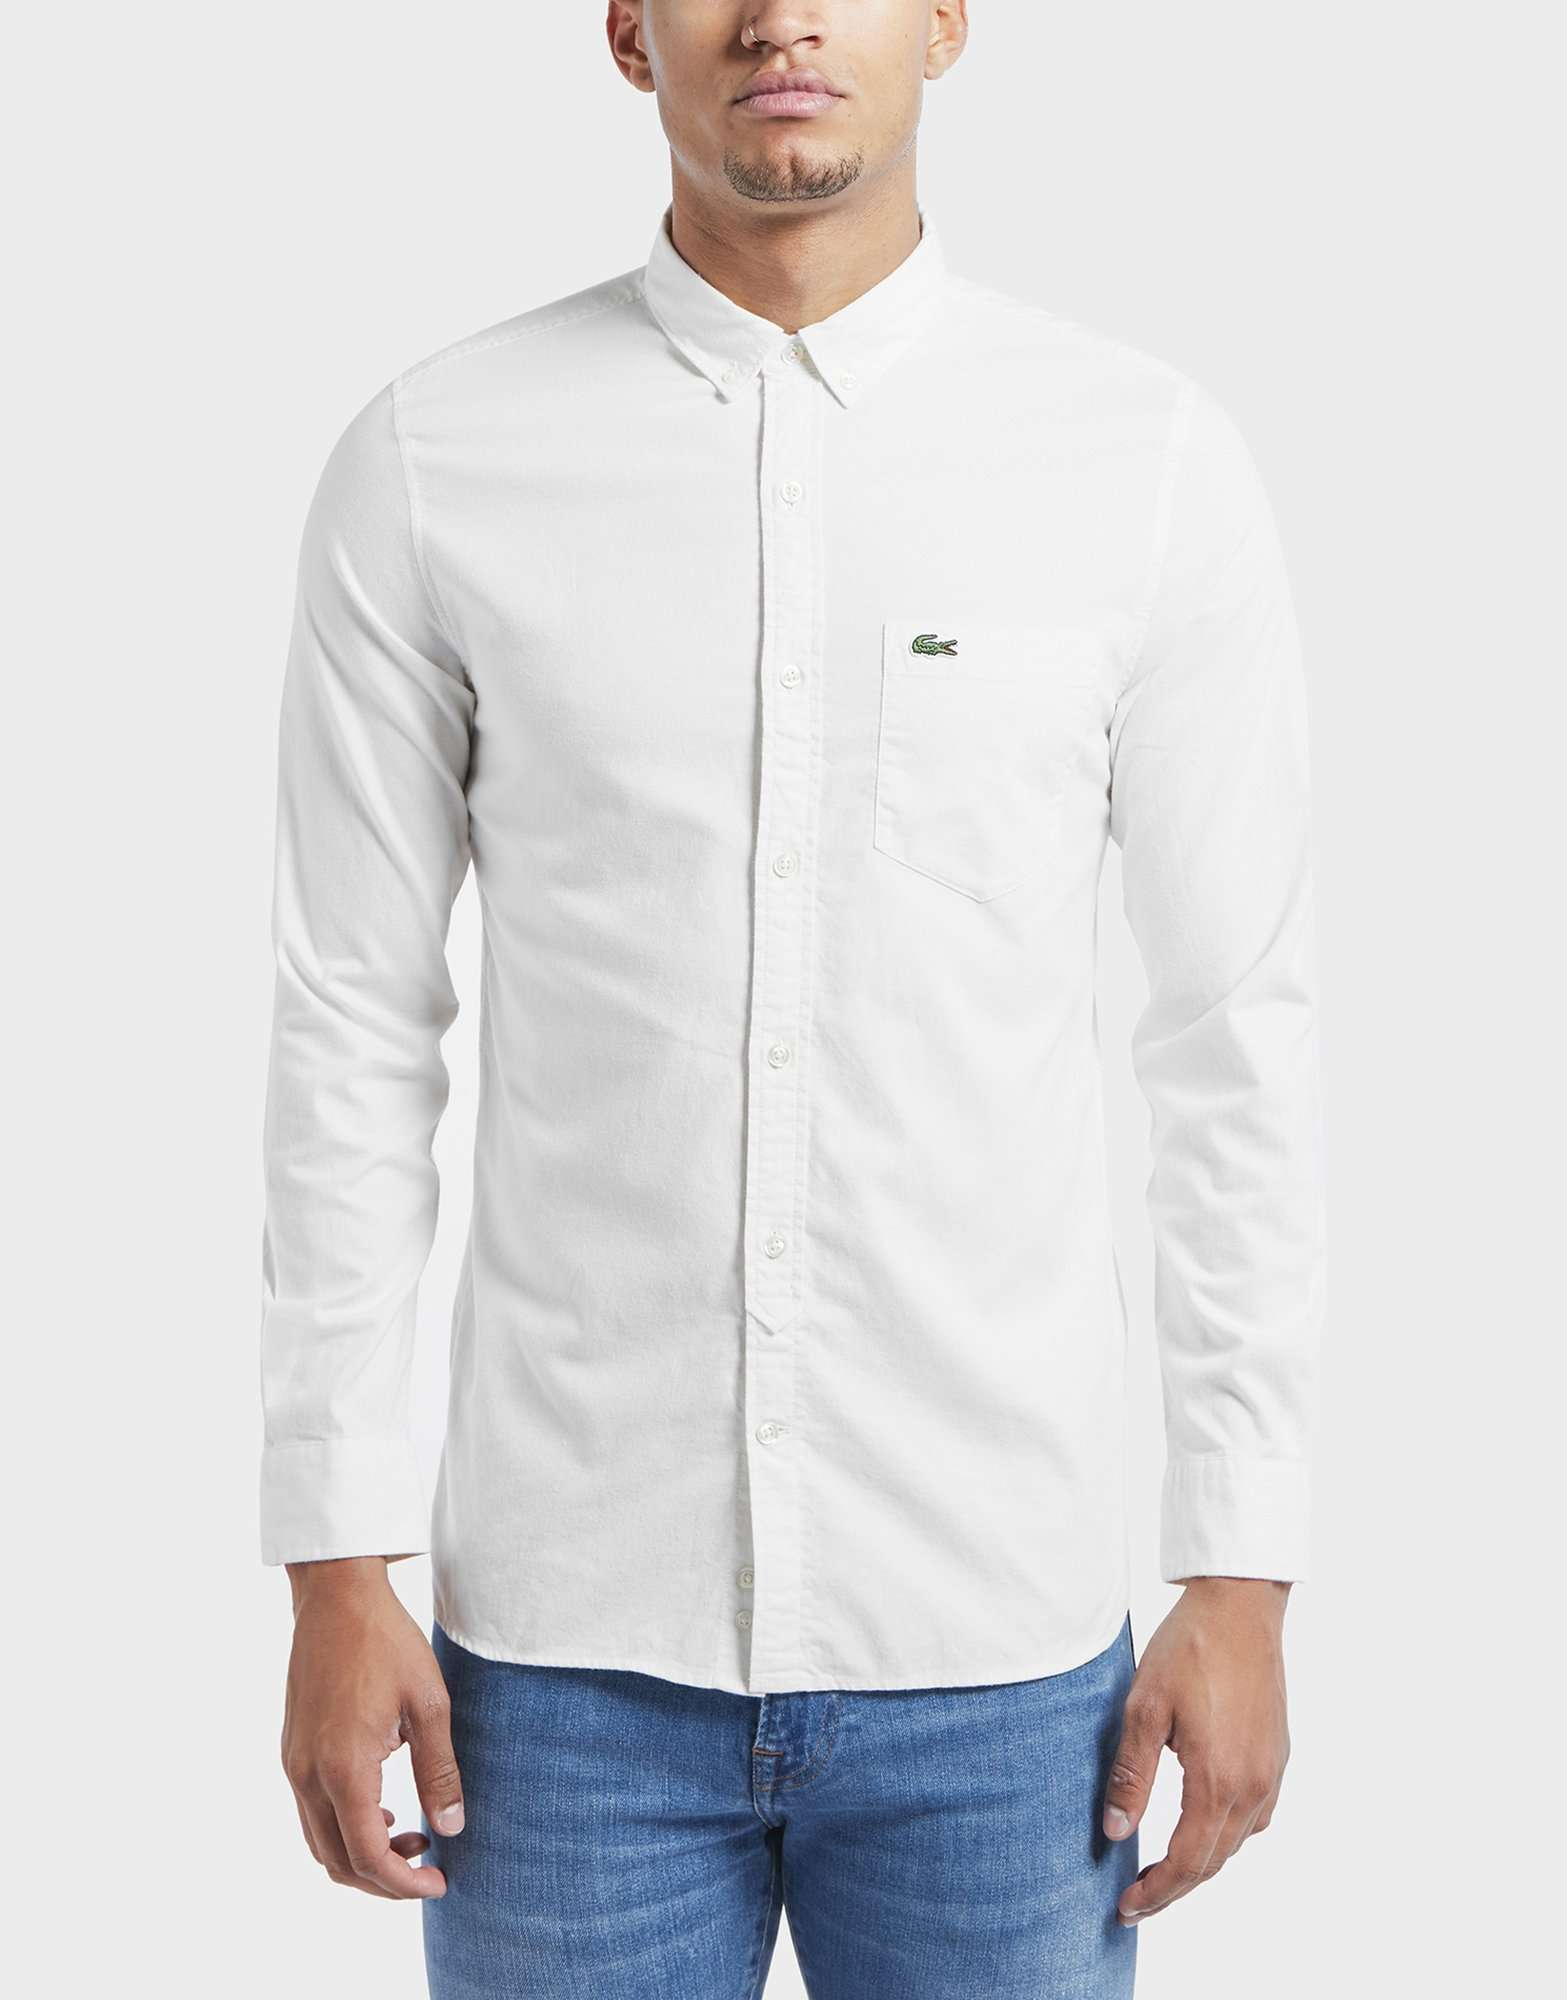 Lacoste Retro Oxford Long Sleeve Shirt